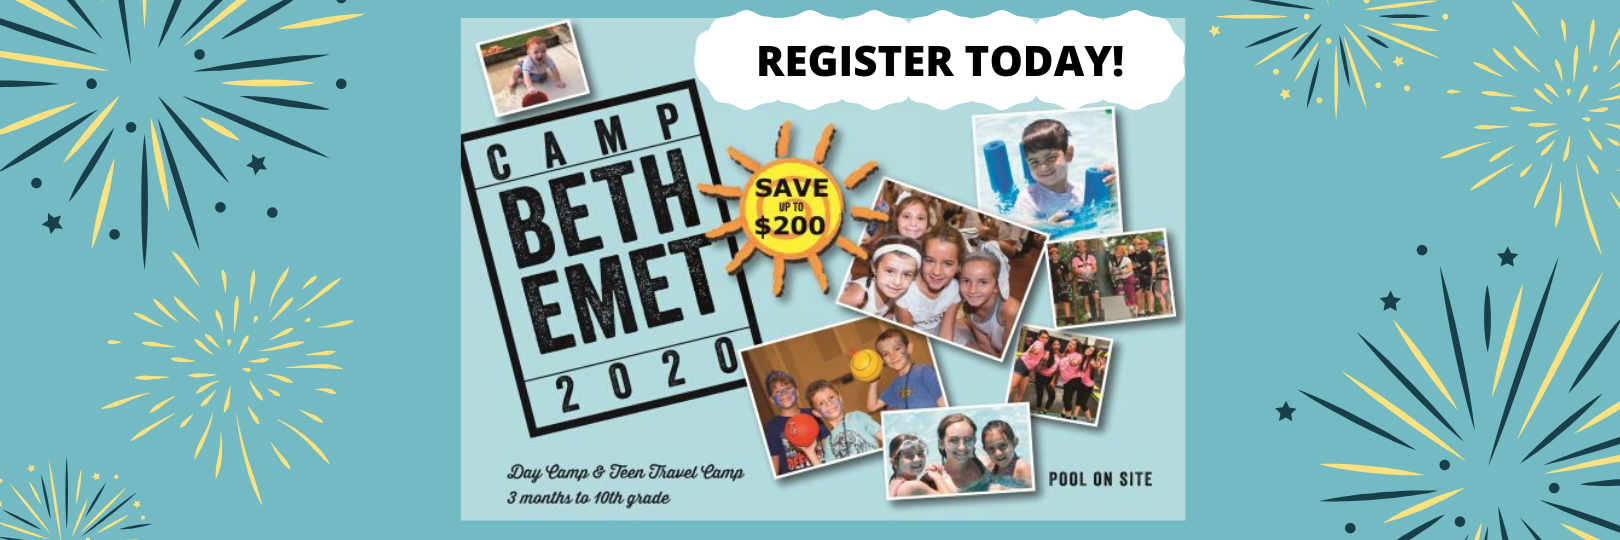 "<a href=""https://www.templebethemet.org/camp/welcome""